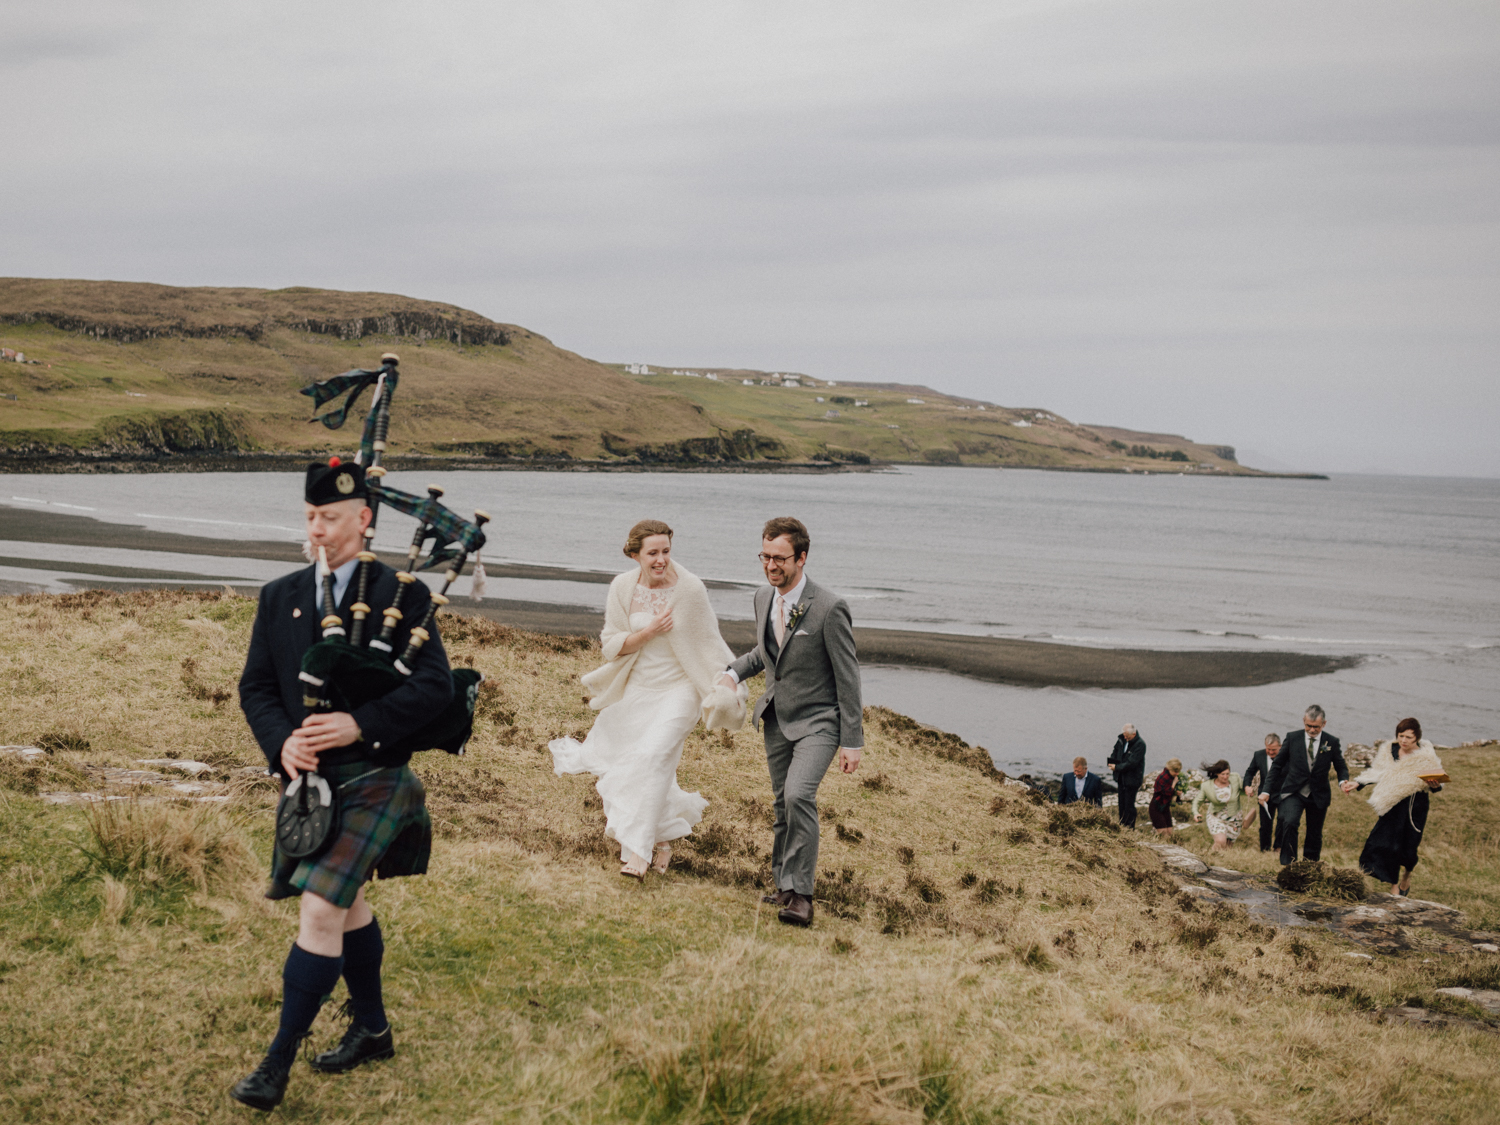 capyture-wedding-photographer-destination-nature-intimate-wedding-isle-of-skye-scotland-460